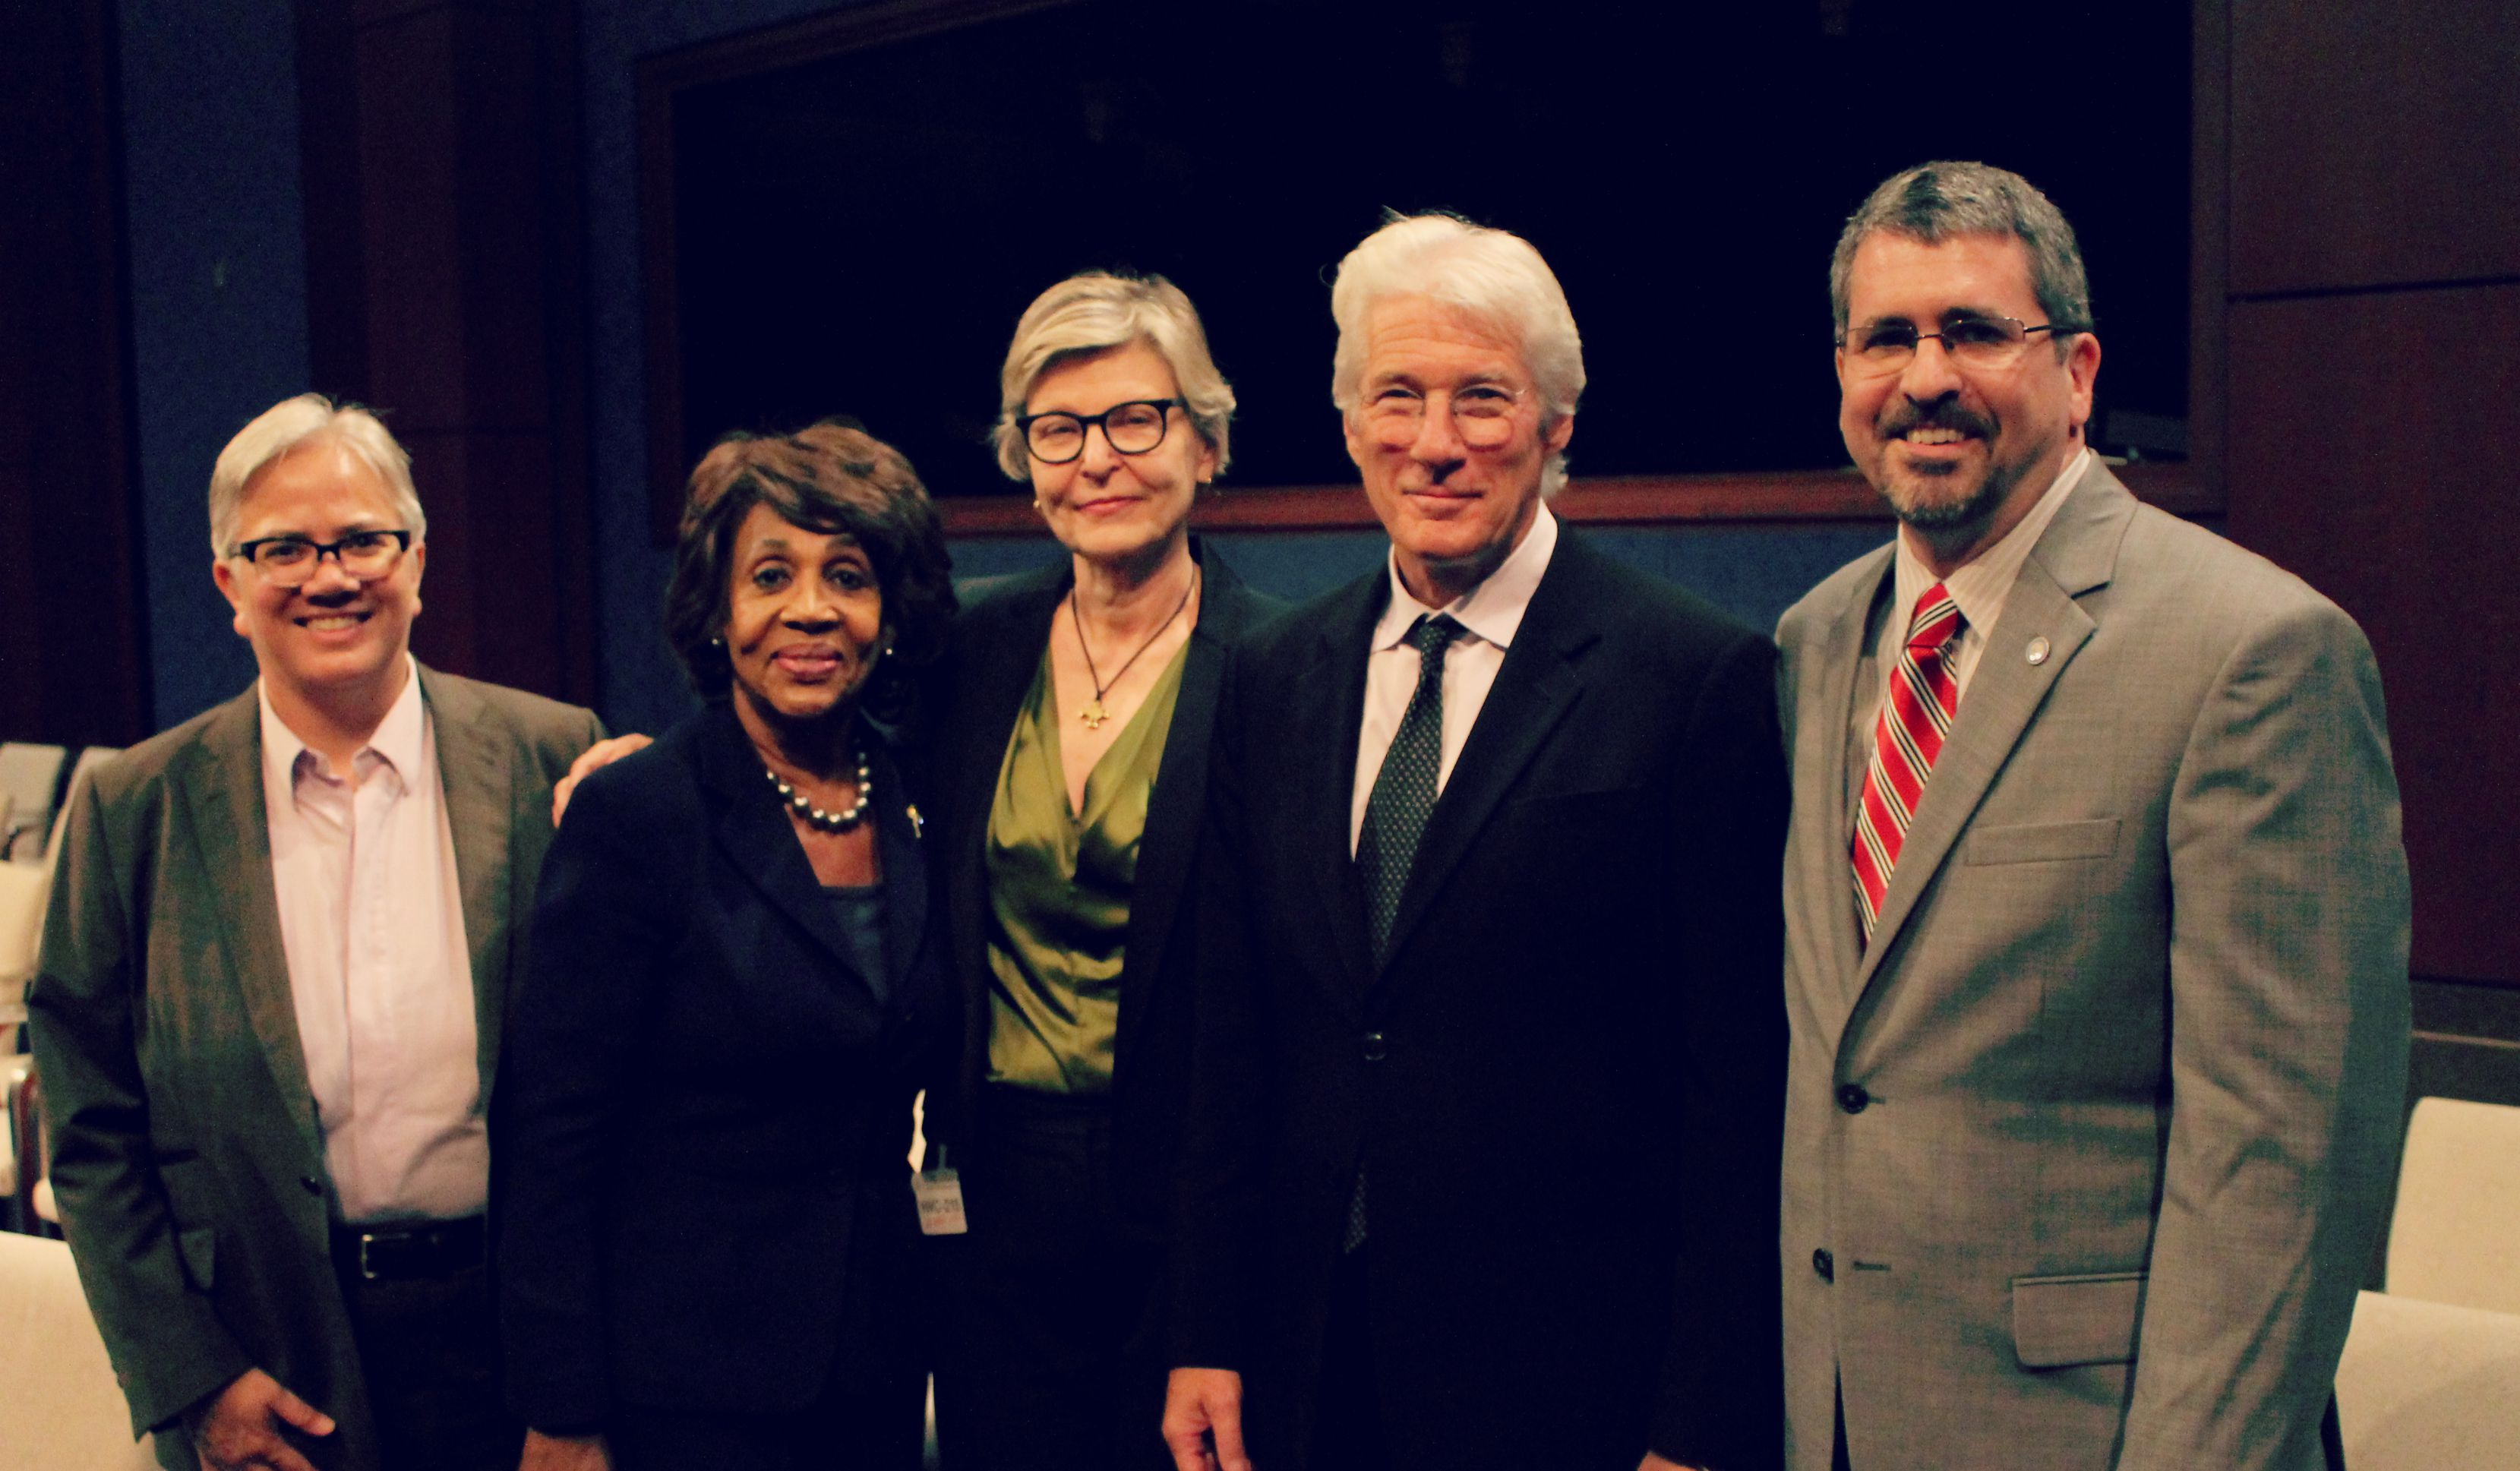 Congresswoman Waters with Panelists